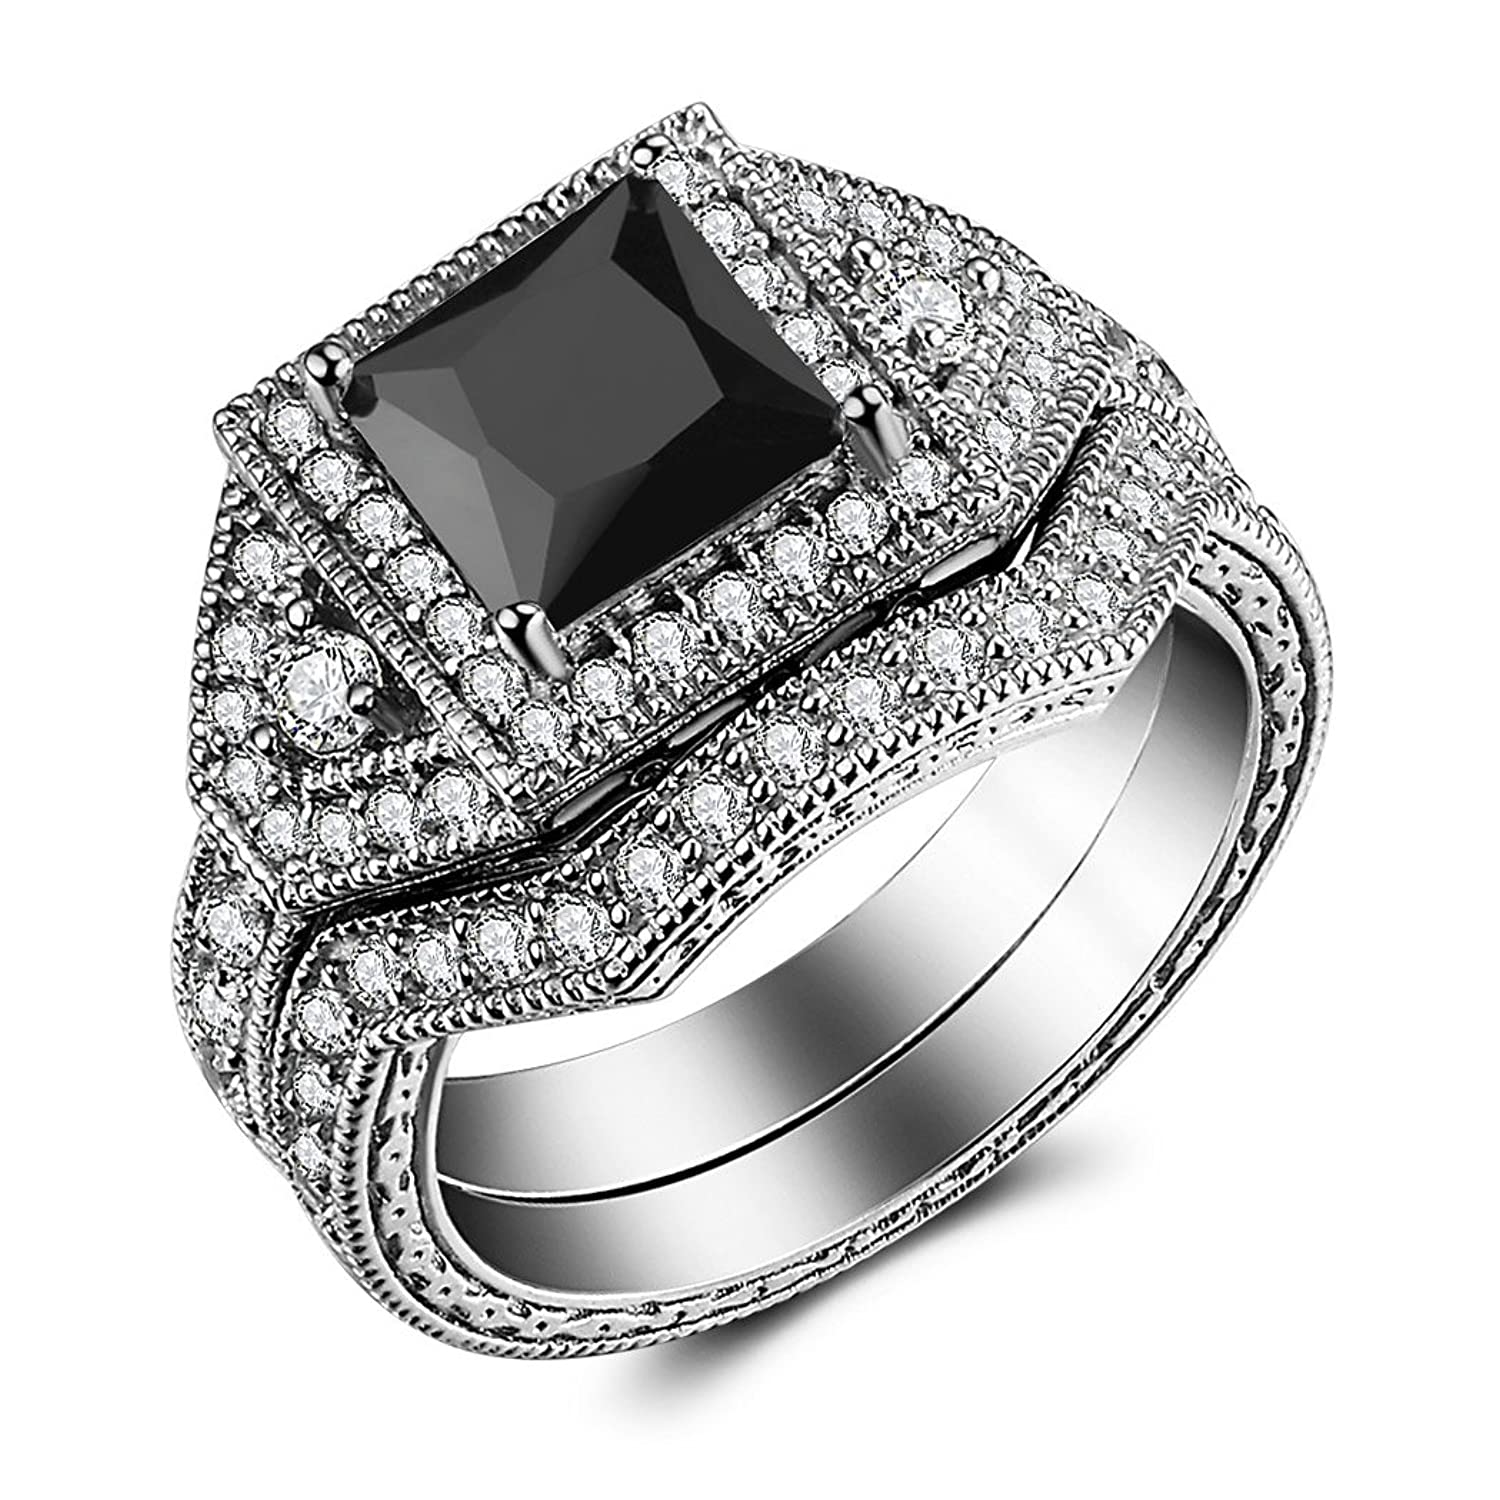 Amazon Caperci 2 0ct Princess Cut Black CZ Diamond Engagement